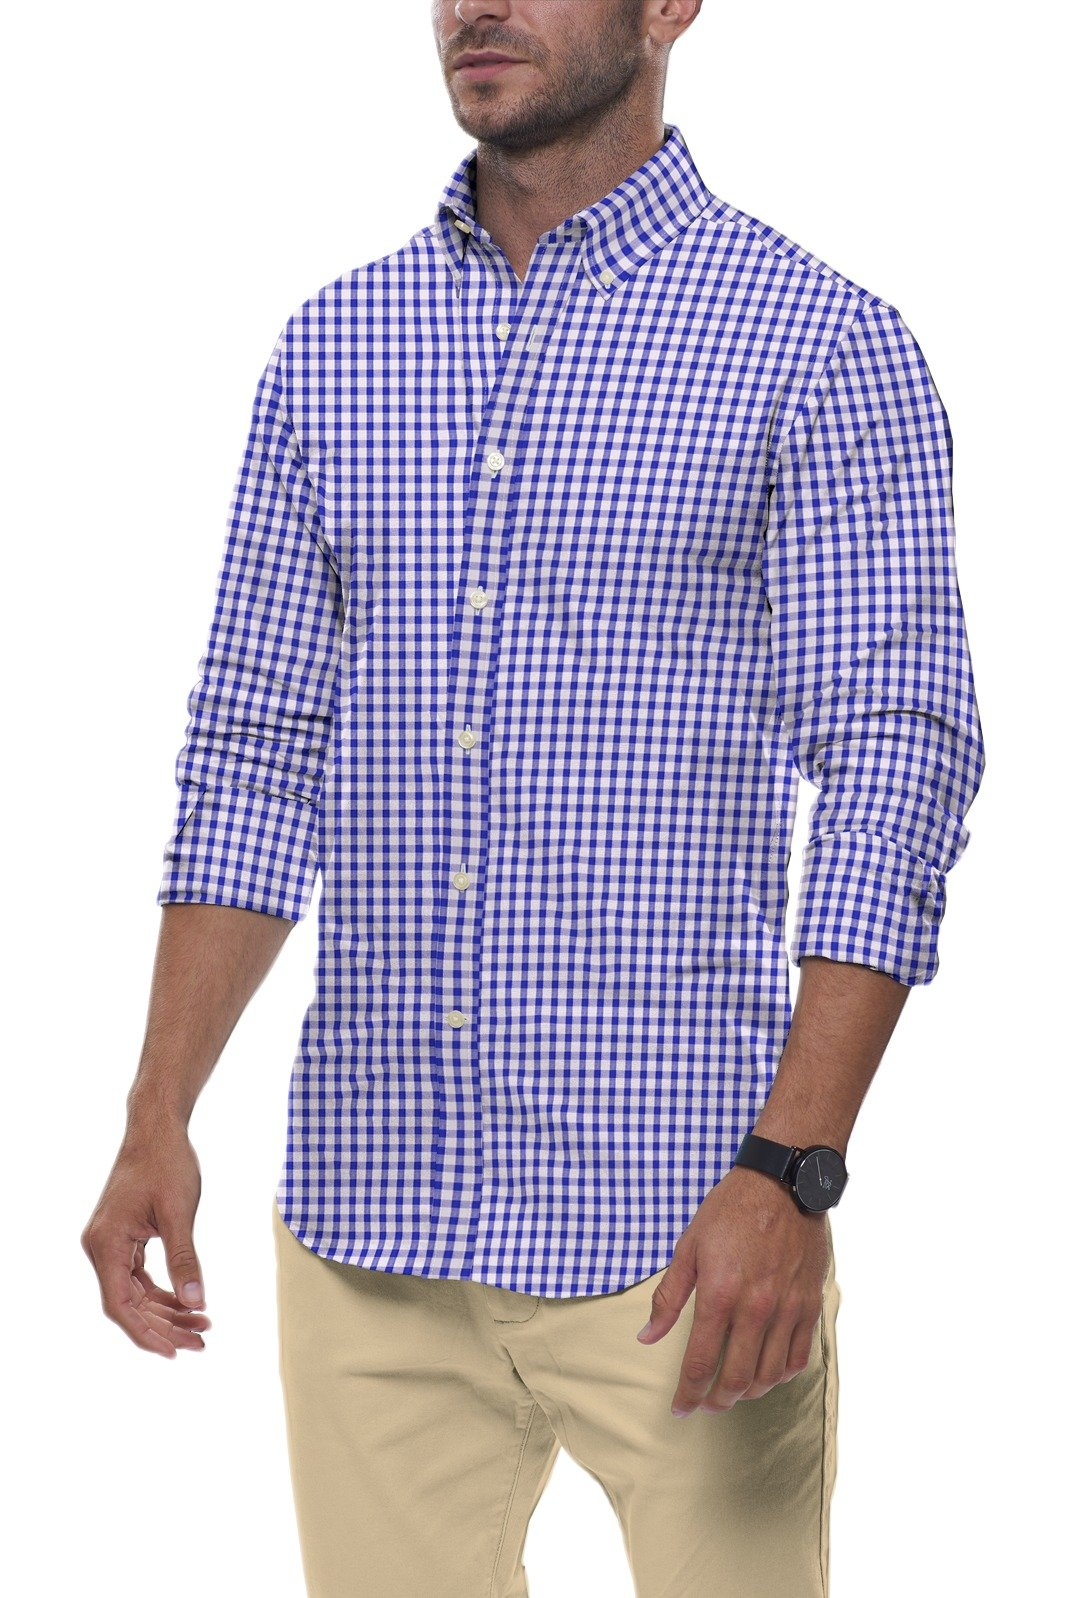 Cobalt Gingham Seersucker: Semi-Spread Collar, Long Sleeve